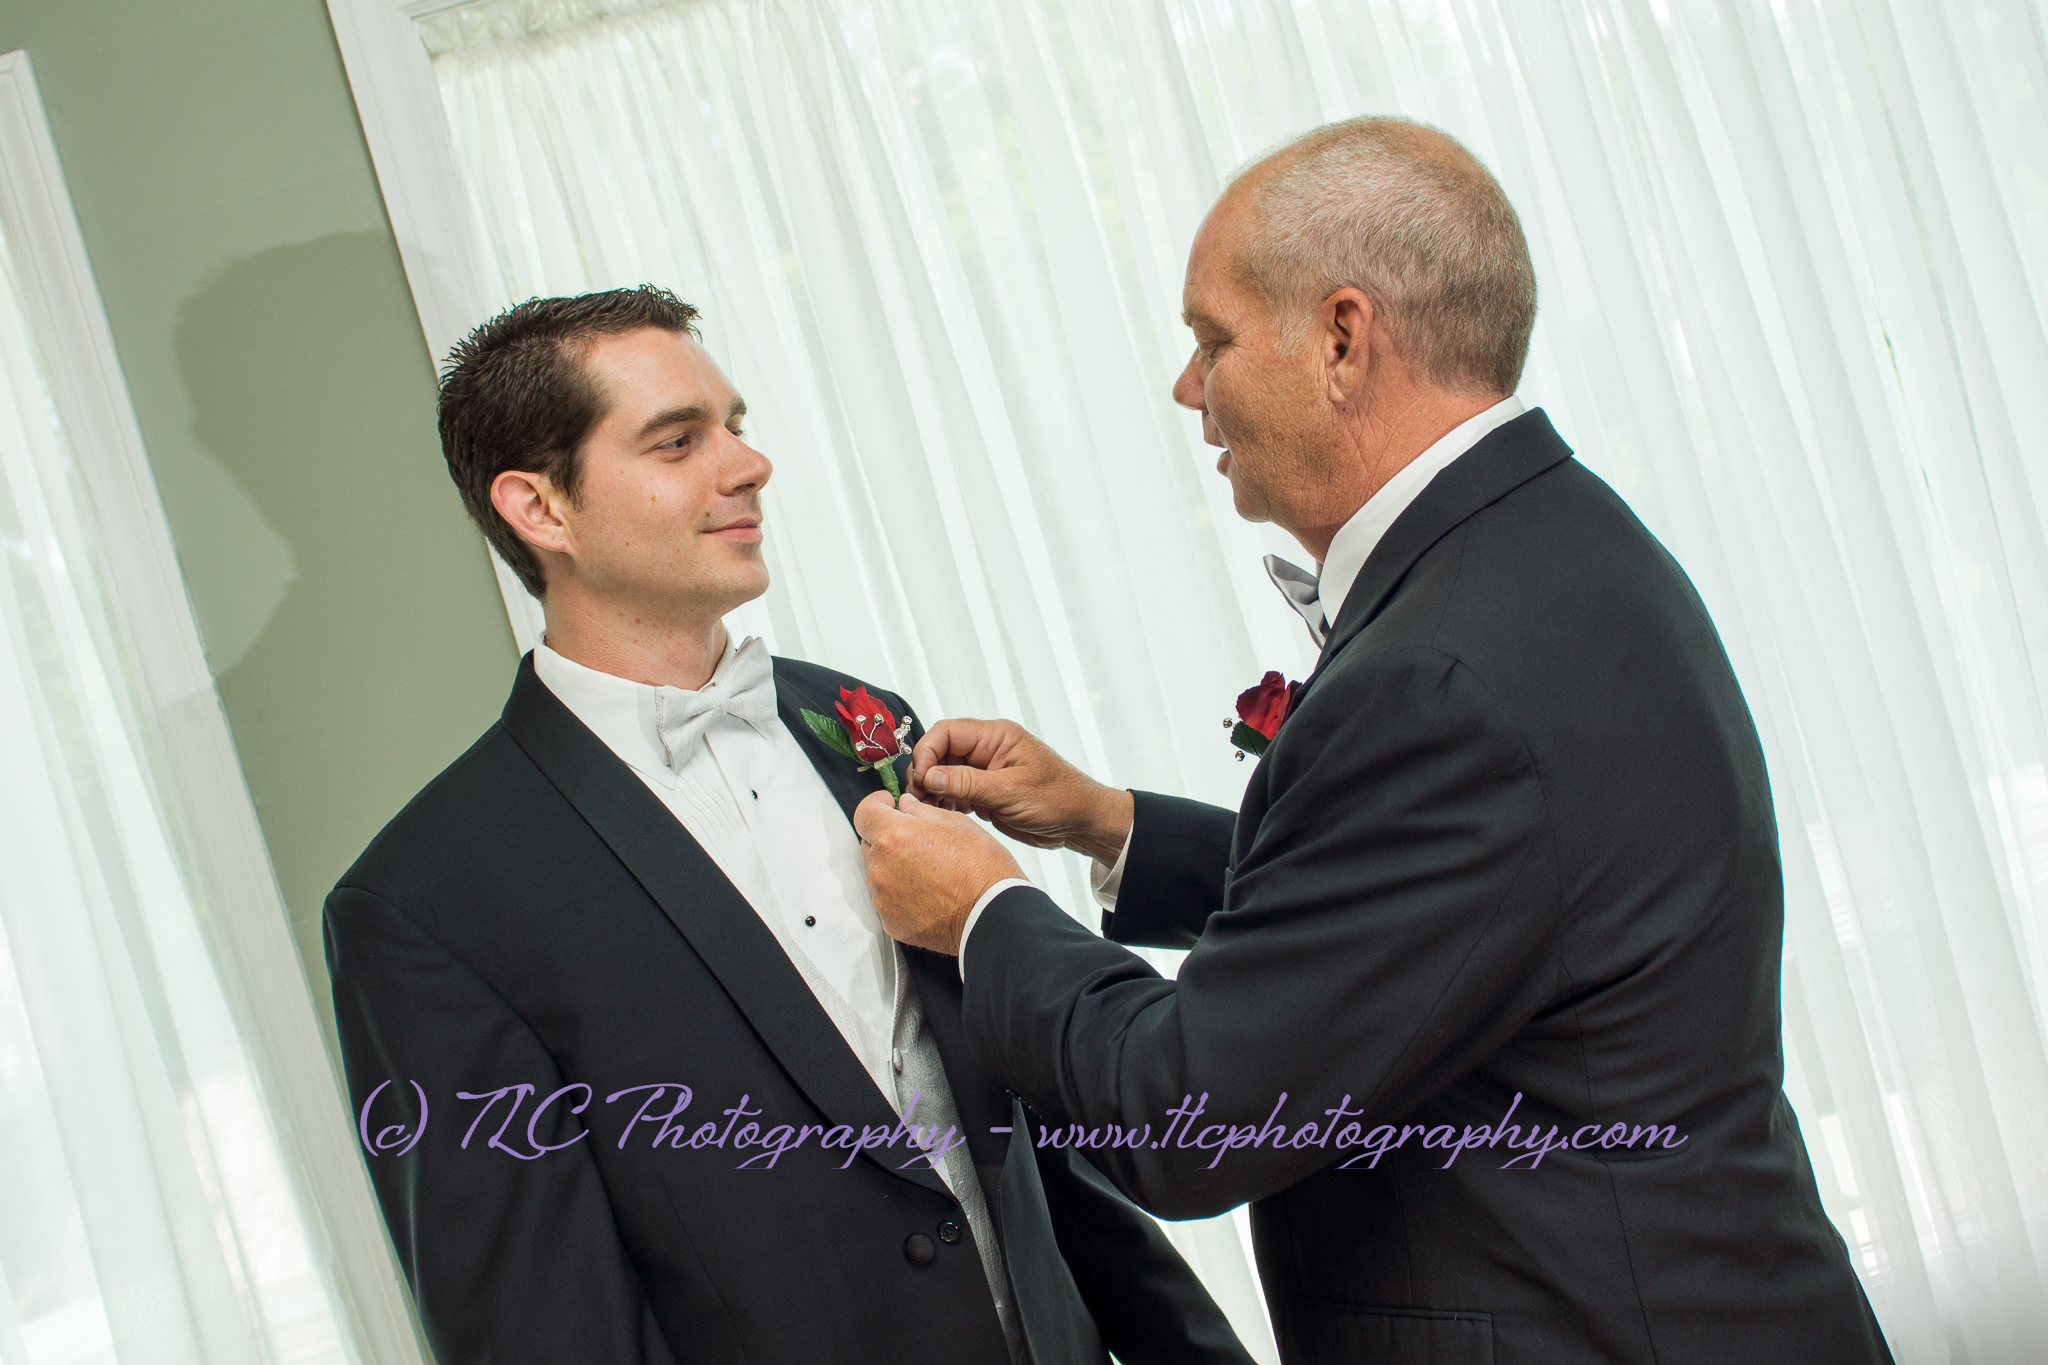 Dad helping the groom with his boutonniere before the wedding ceremony